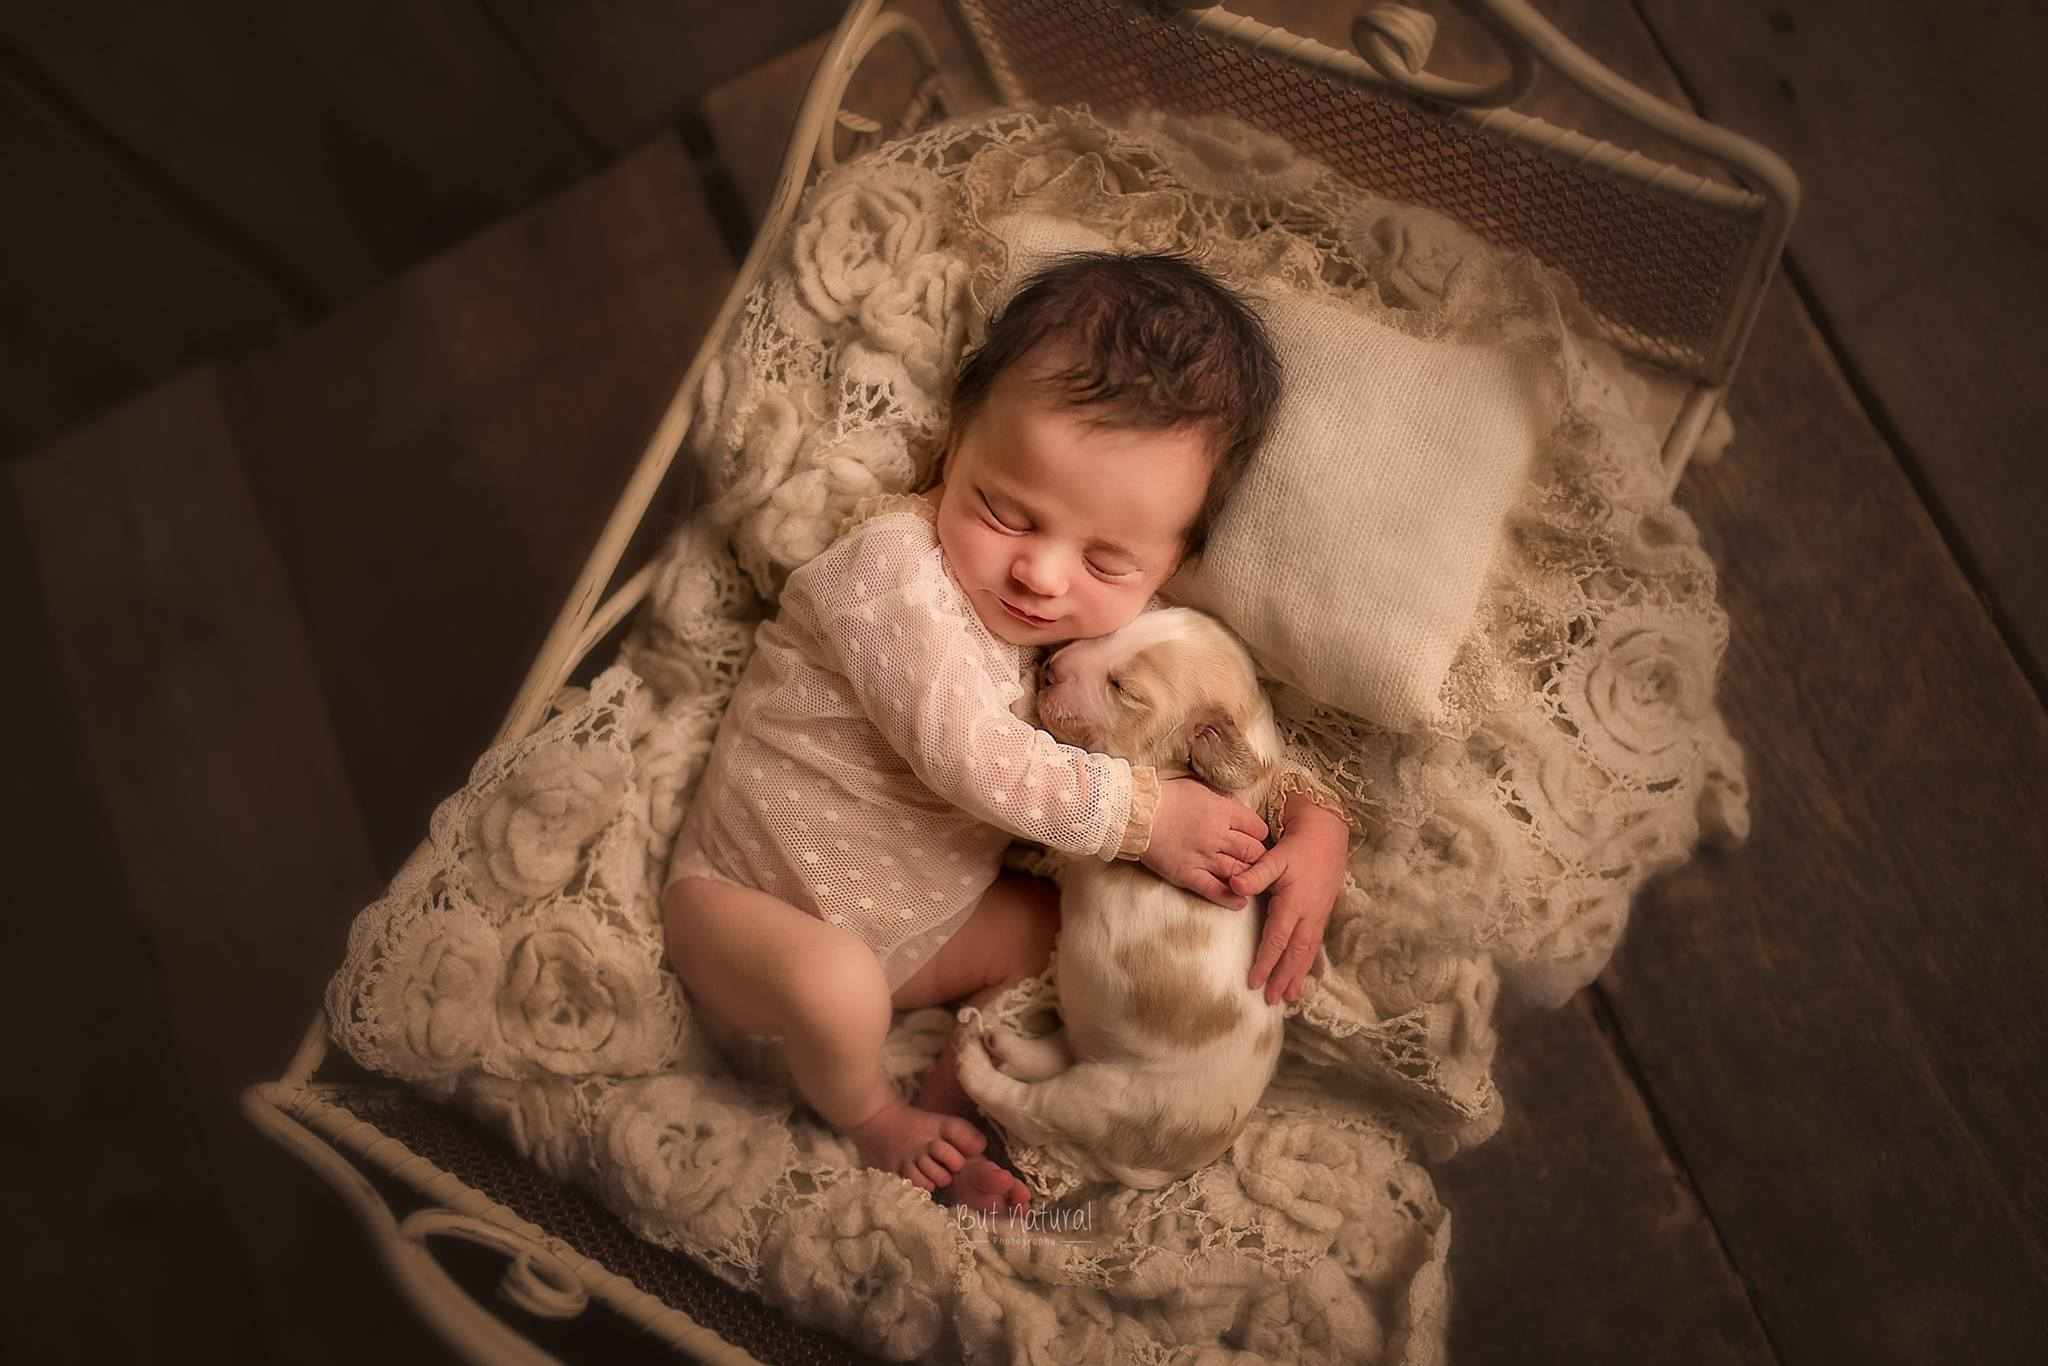 Newborn baby photoshoot with prop - But Natural Photography